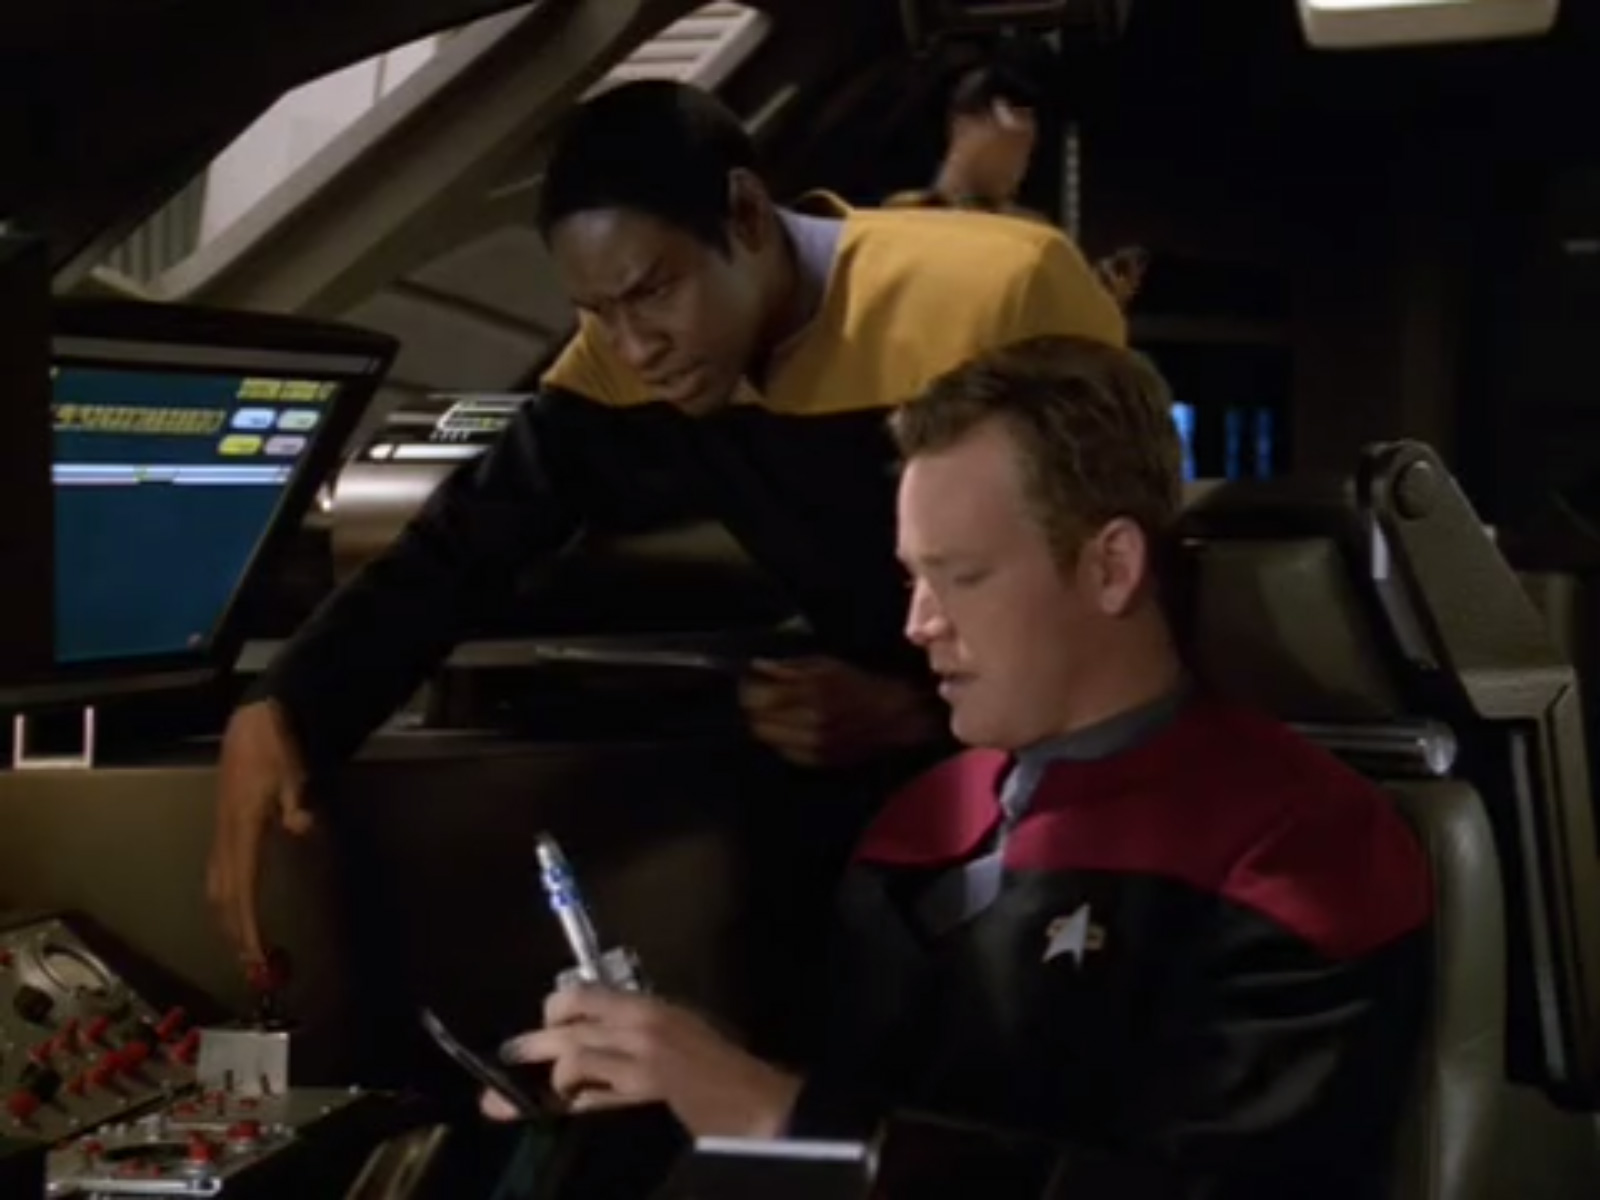 Star Trek Voyager Tuvok pointing at shuttle knobs